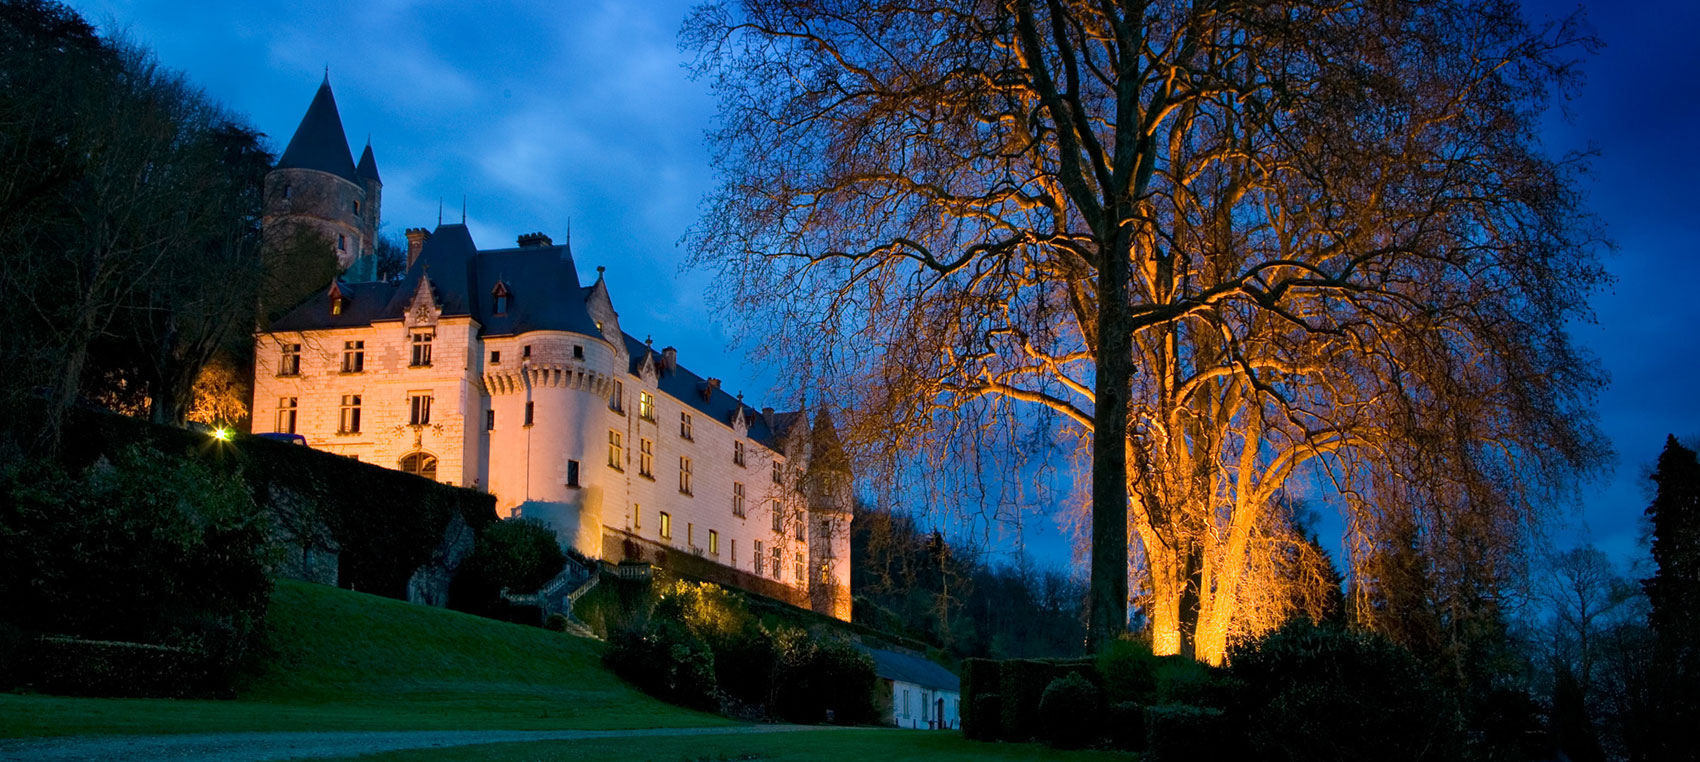 Search Chissay-en-Touraine Hotels $51 - Expedia